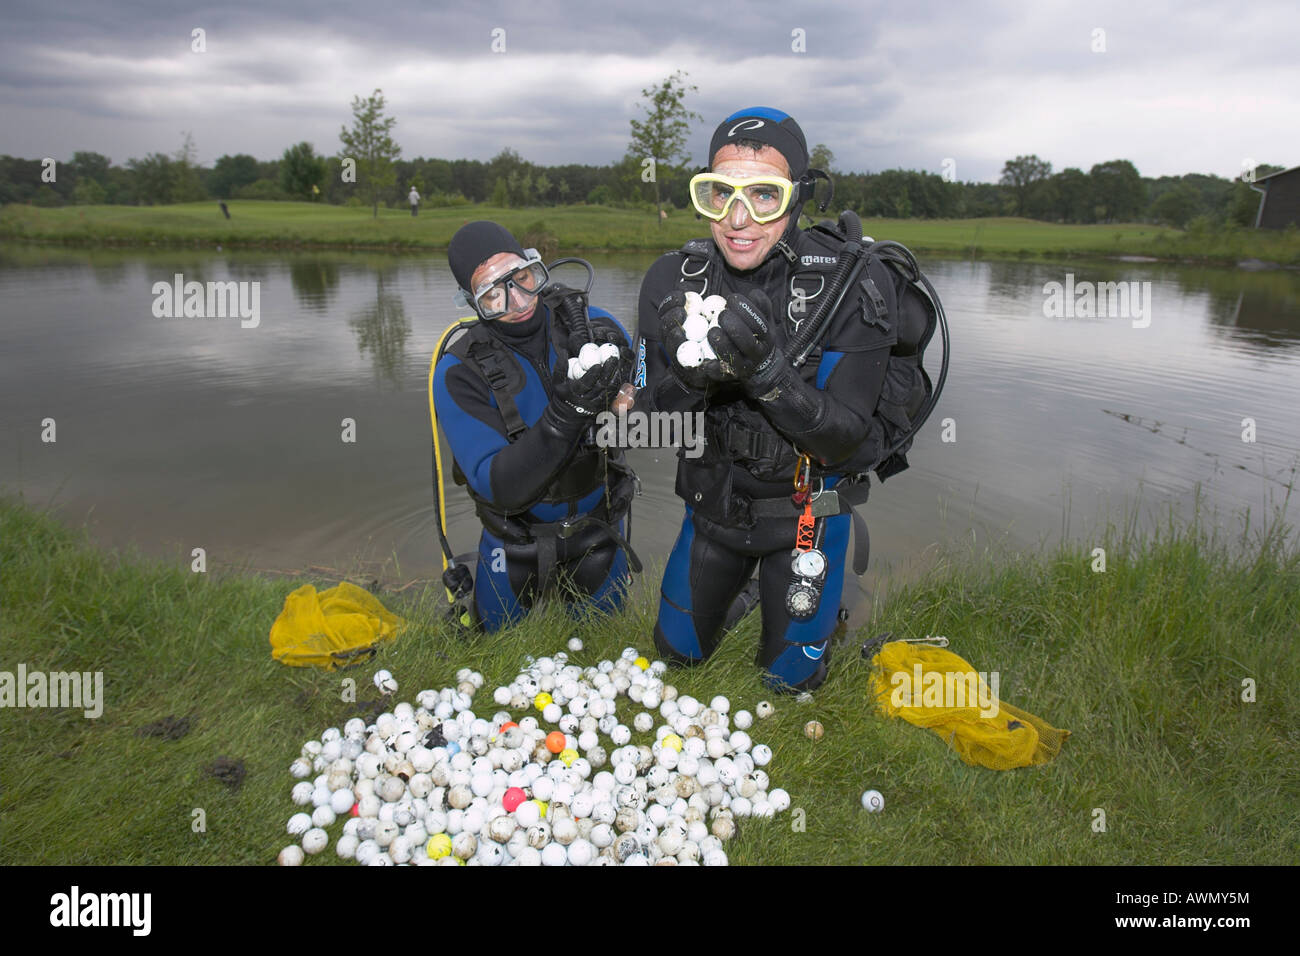 My Ebay Verkaufen Divers Harvesting Golf Balls From A Lake At A Golf Course To Sell